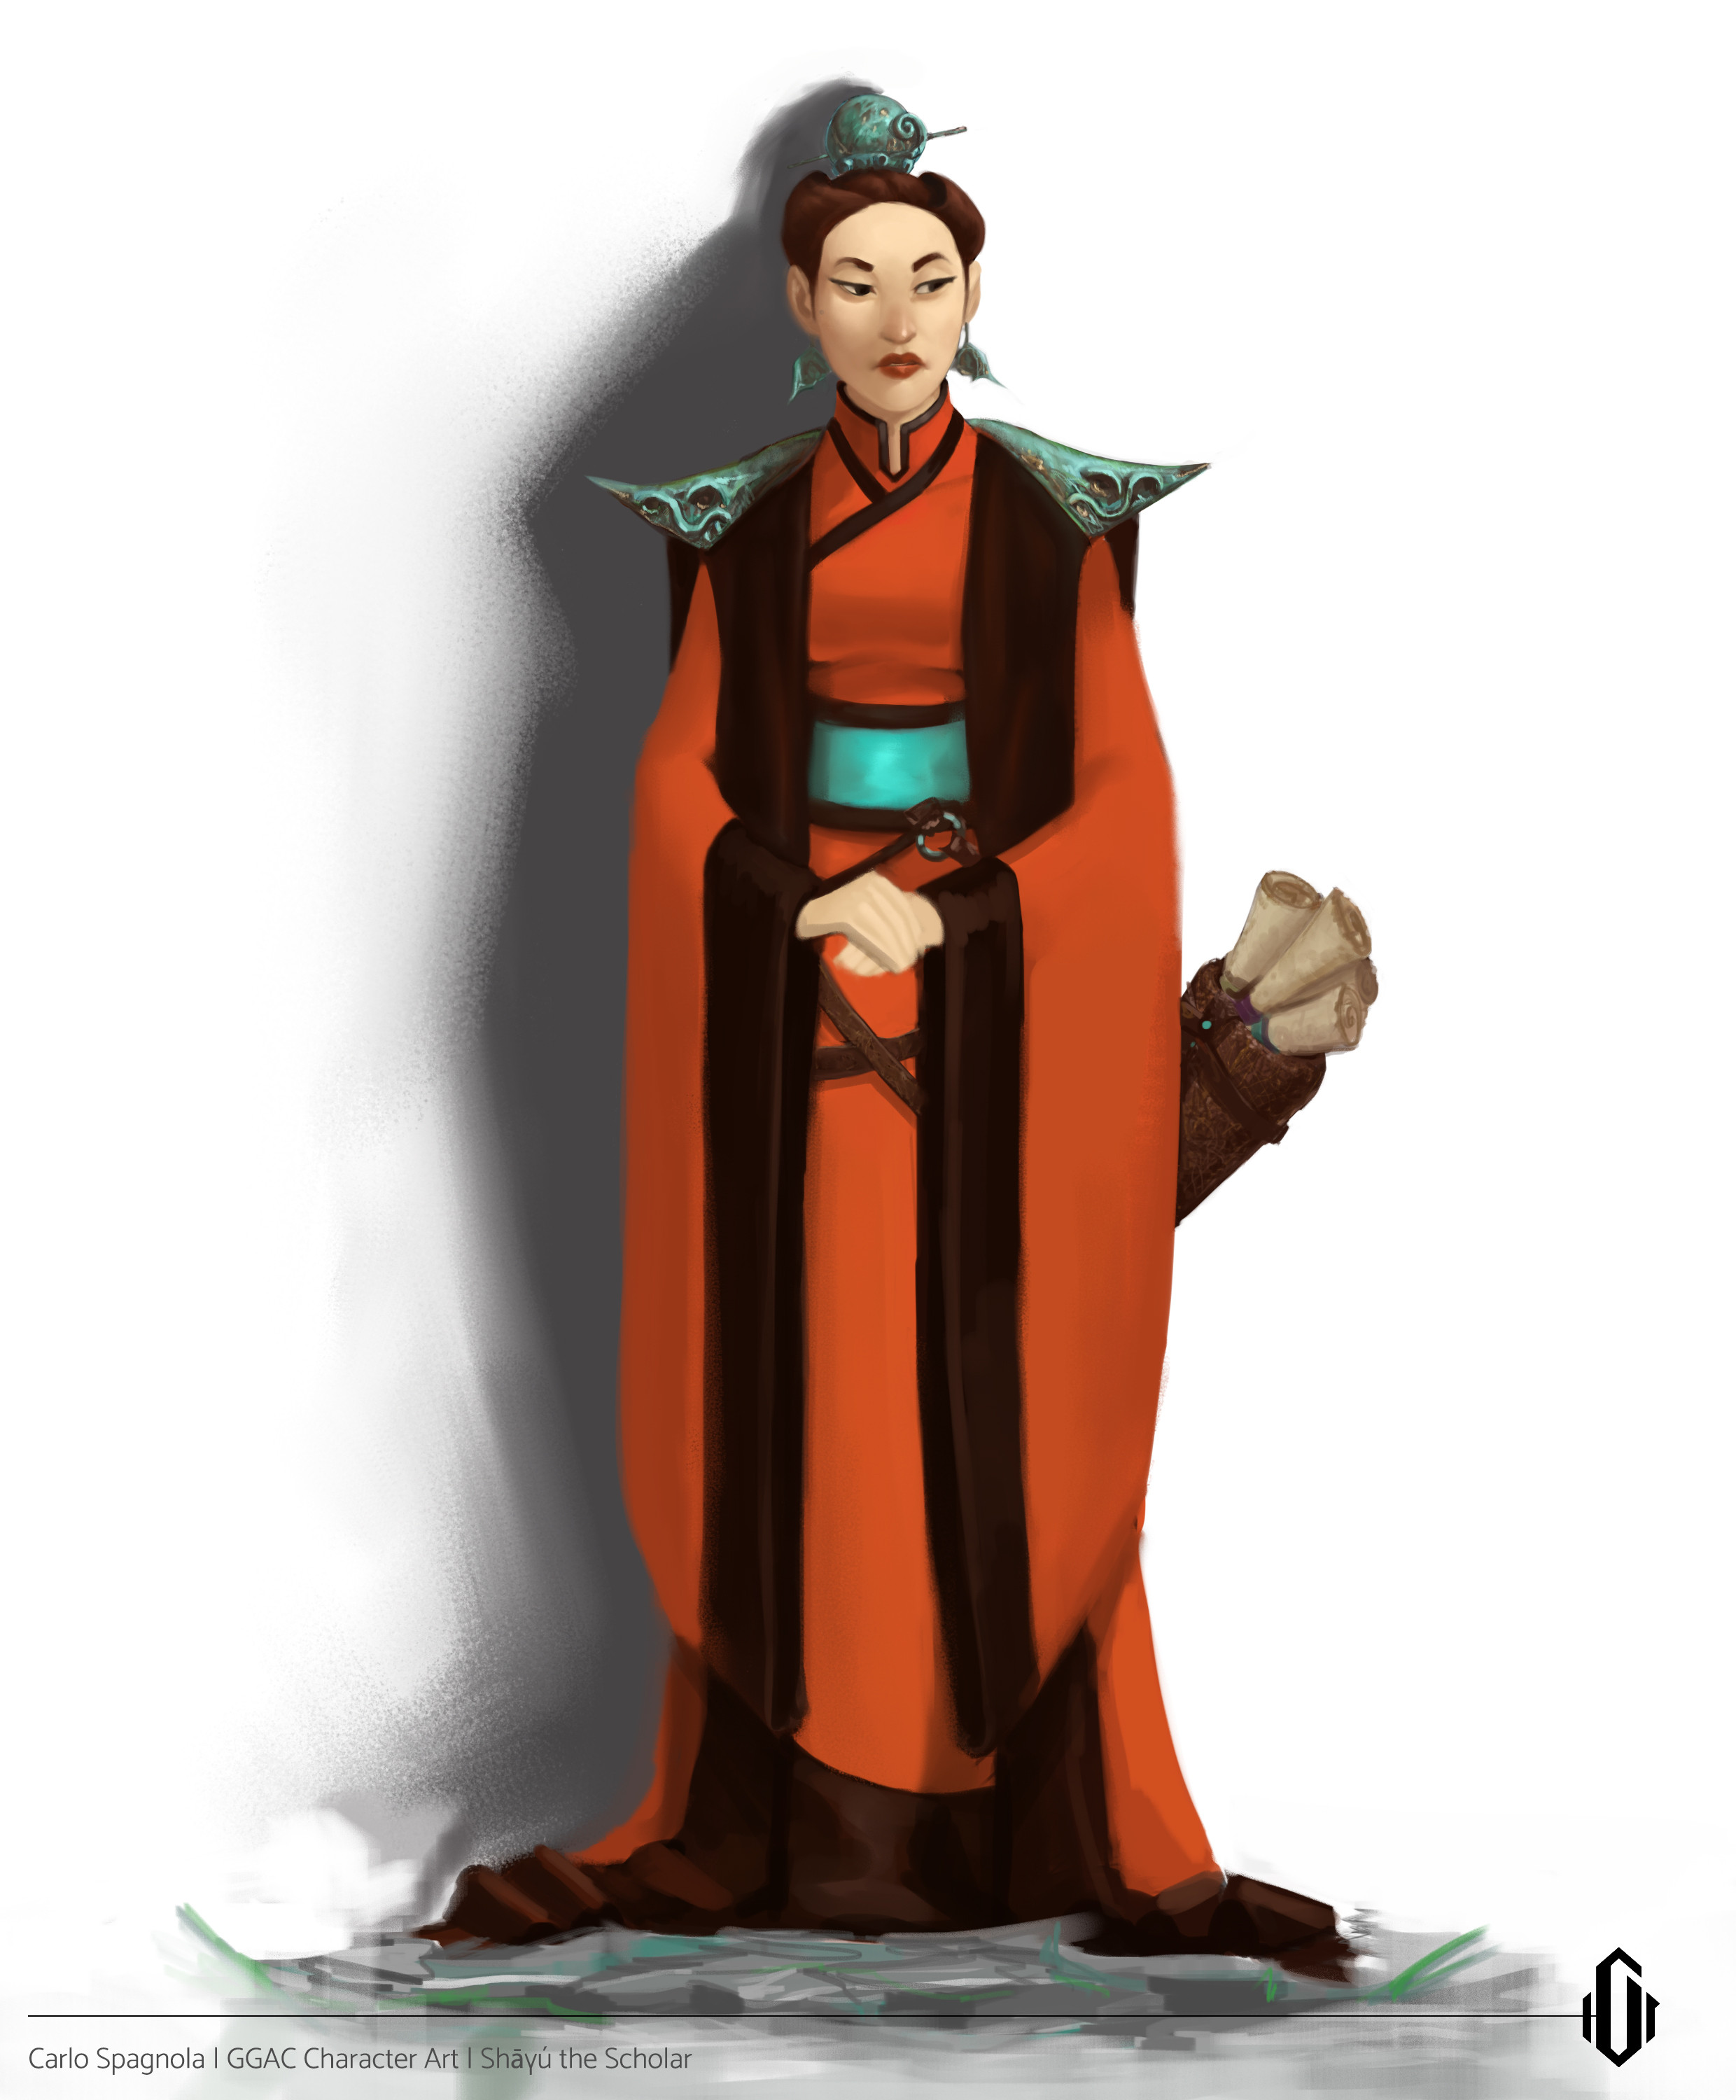 Shāyú (a self given name, no one really cared to ask her real name) is a tenacious savant. When she was told she couldn't be a scholar due to her birth class, not only did she ignore it, but she promptly fitted a bucket of chum to the King Scholar's head